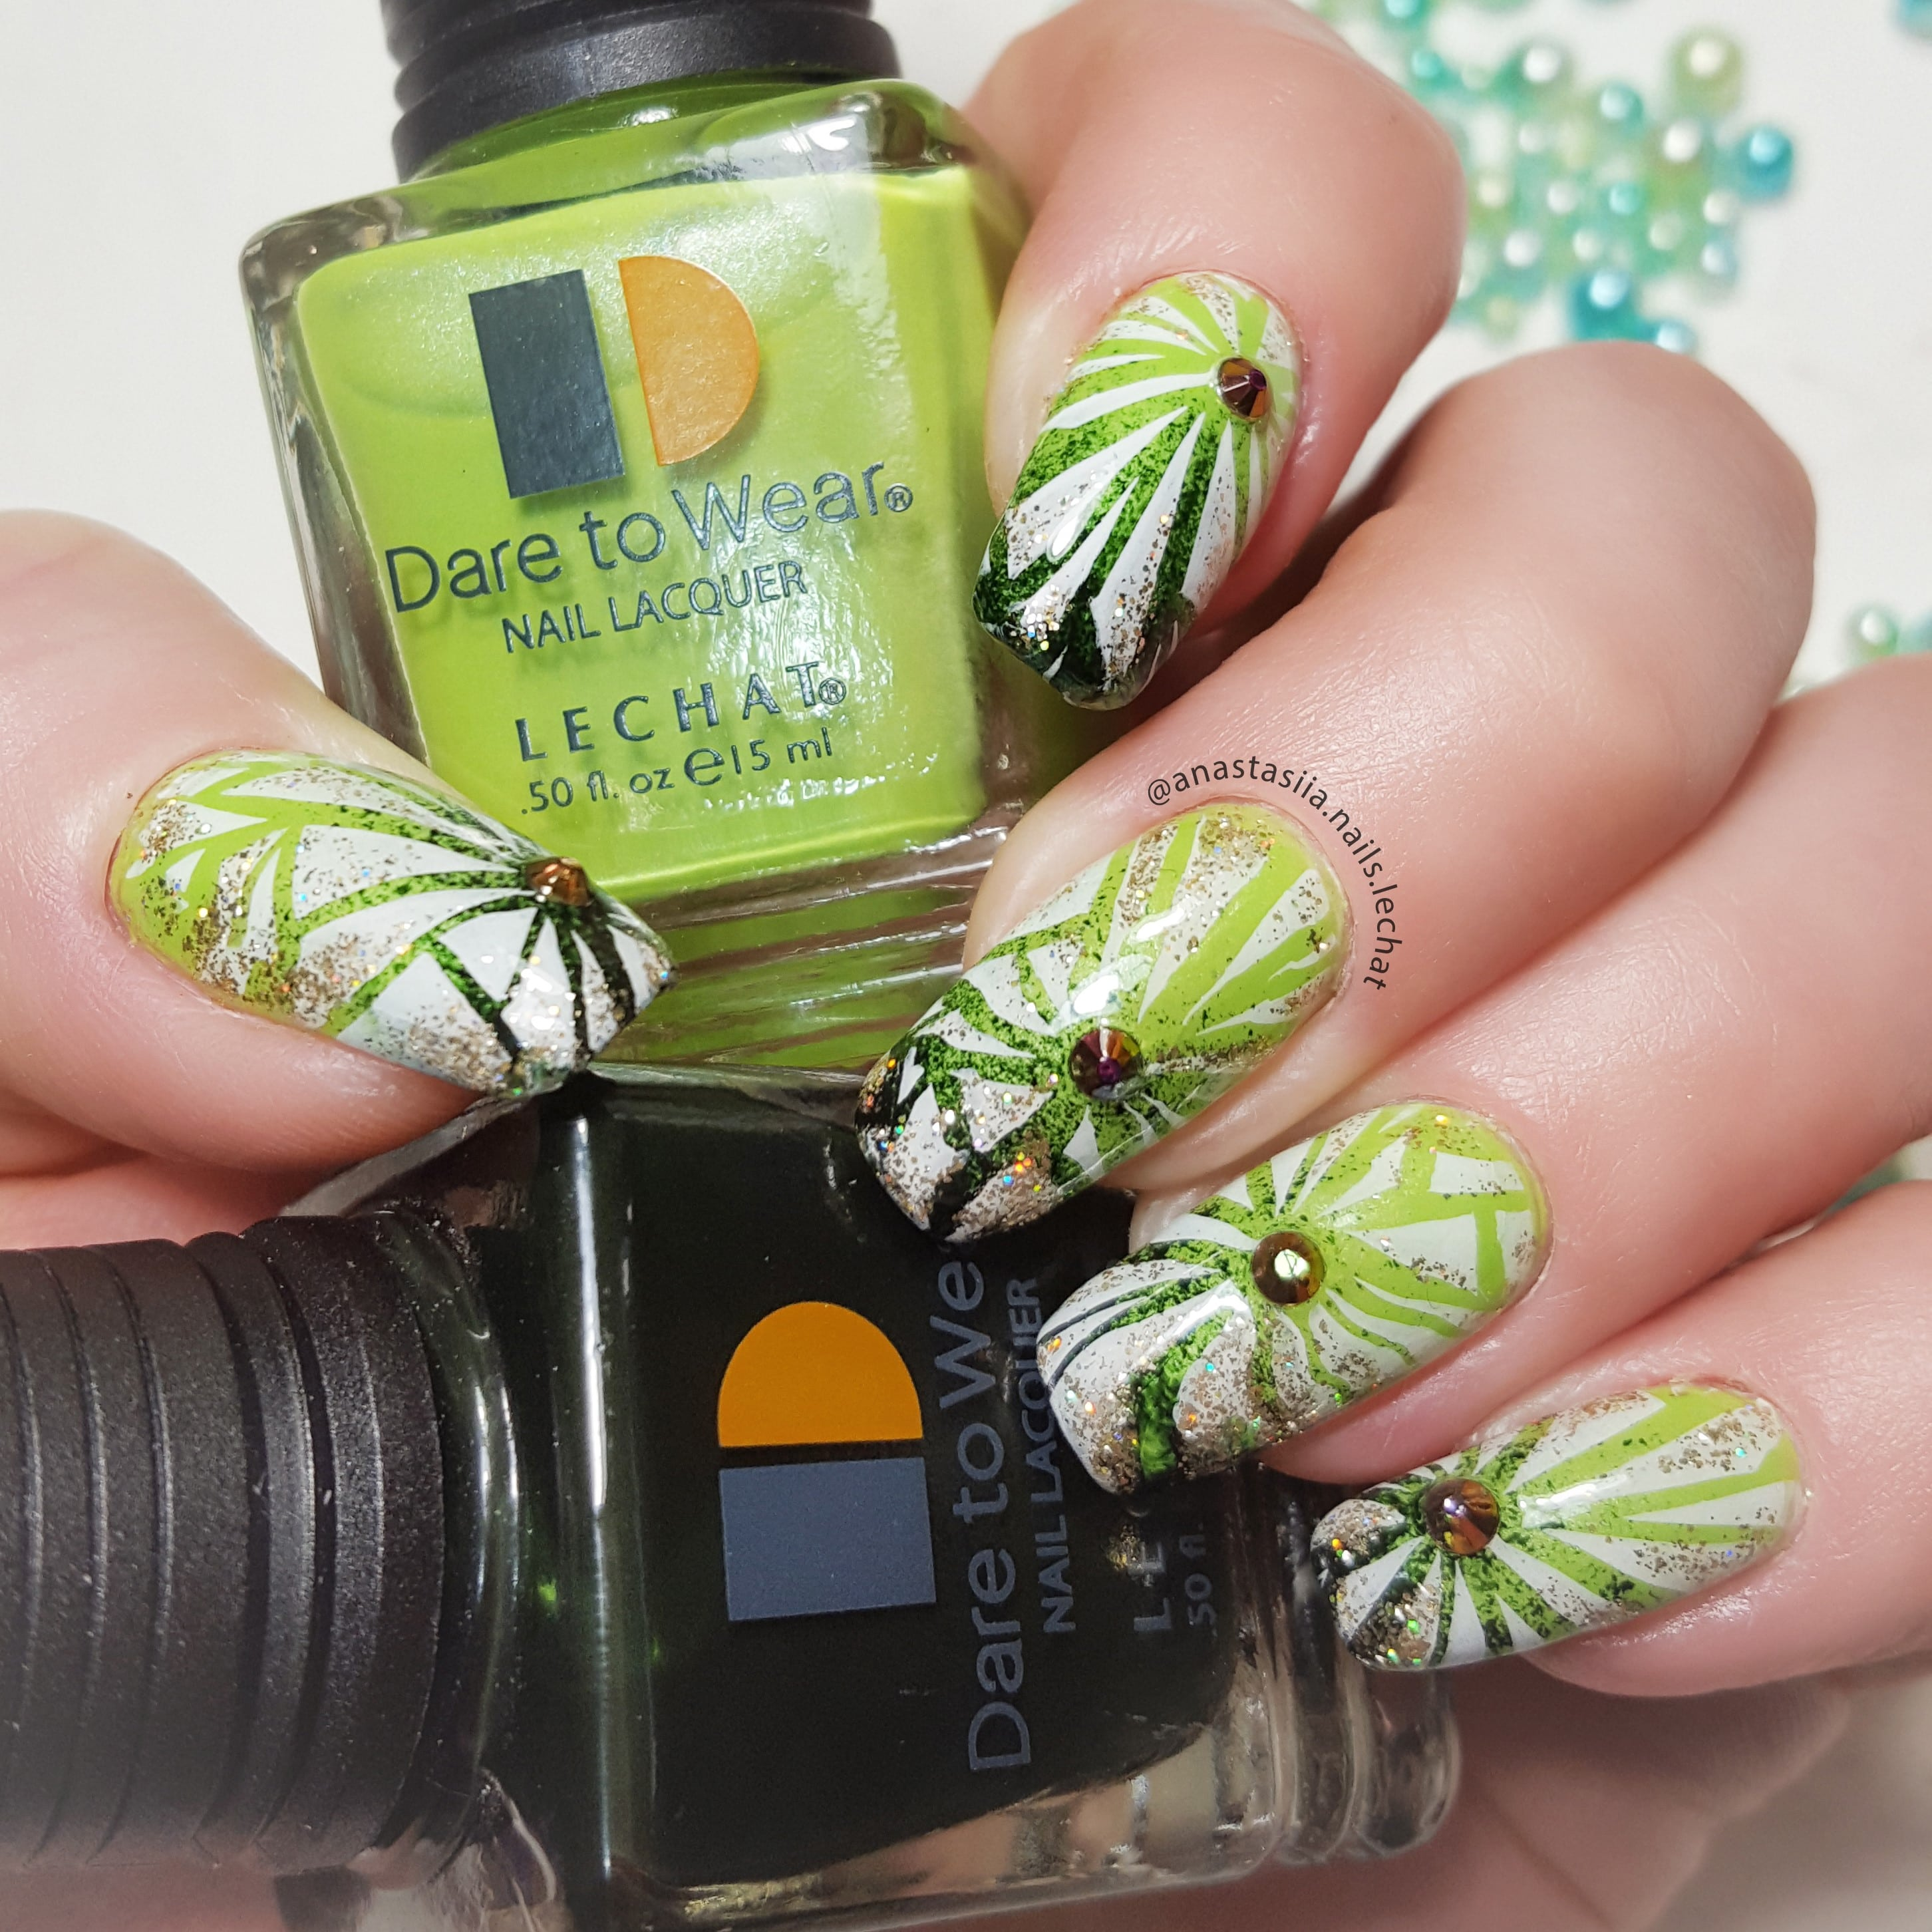 Dare to Wear nail art with bright and dark green